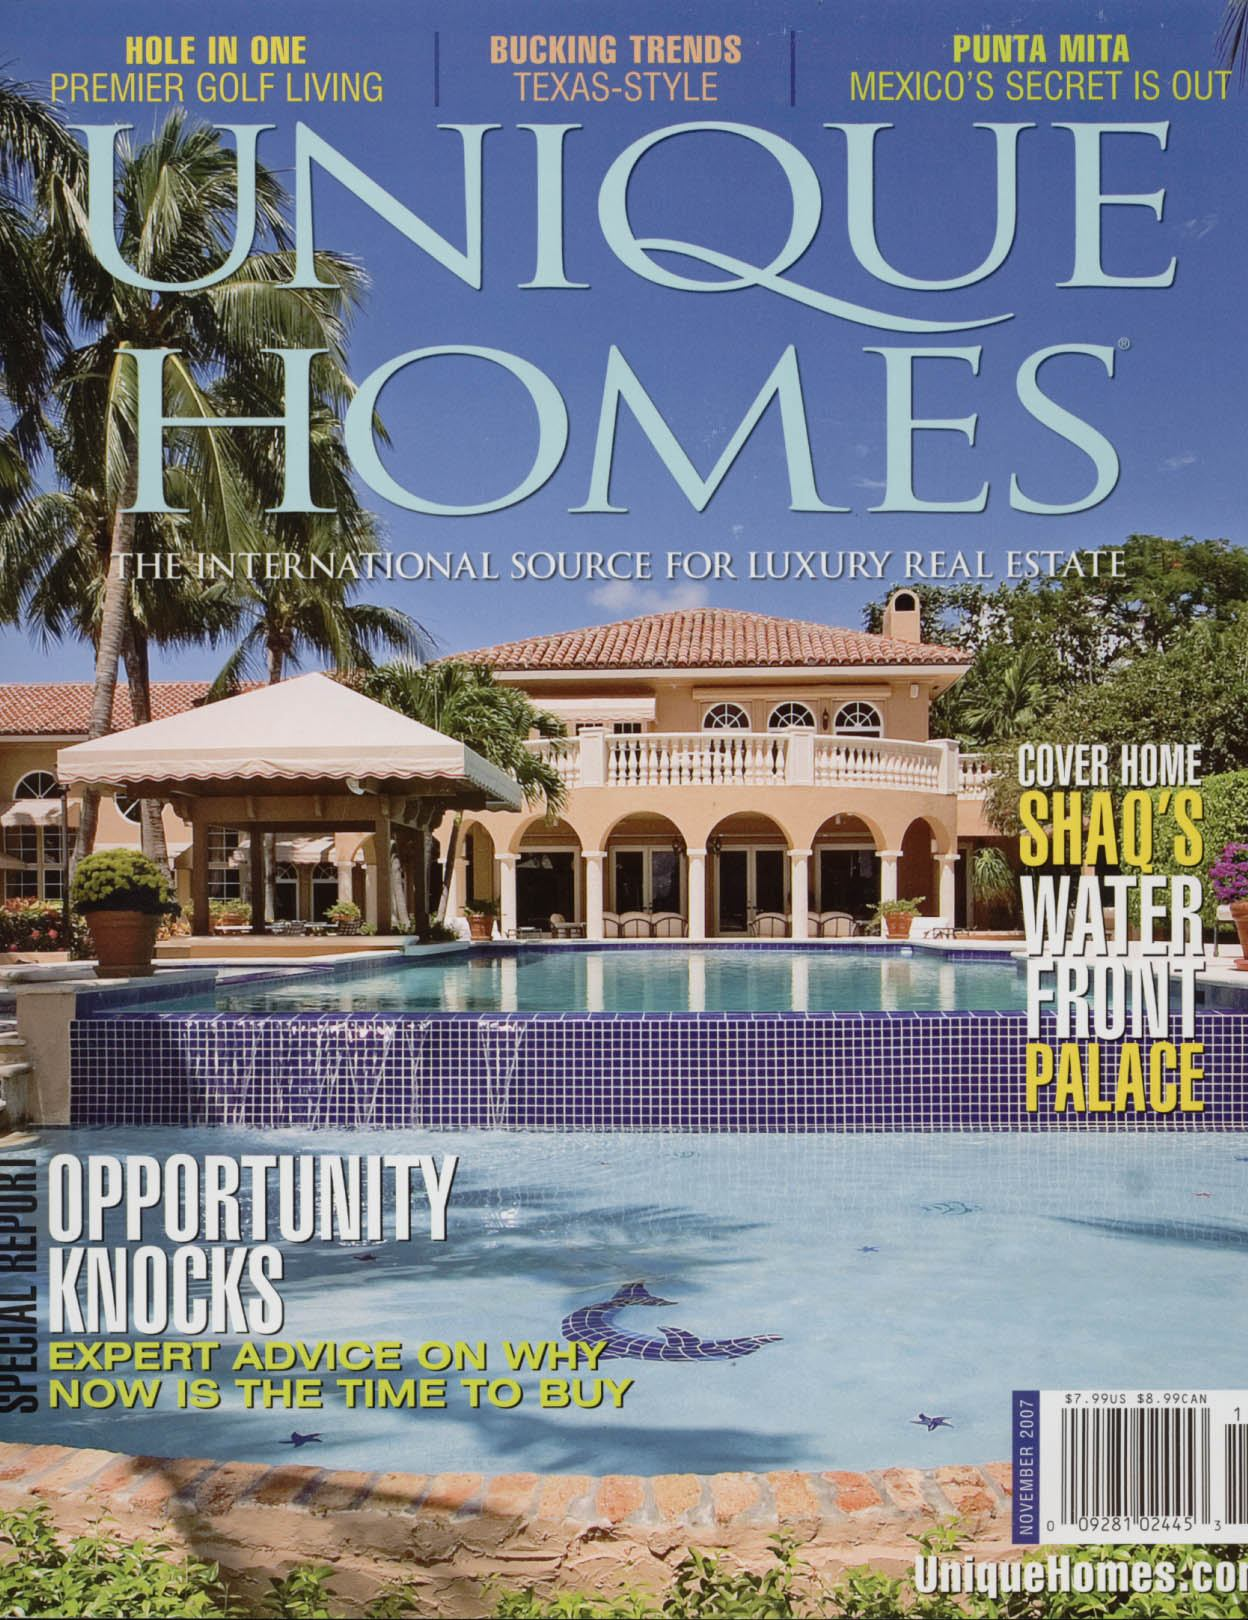 Pages from Chechessee_ Unique Homes Nov 2007.jpg